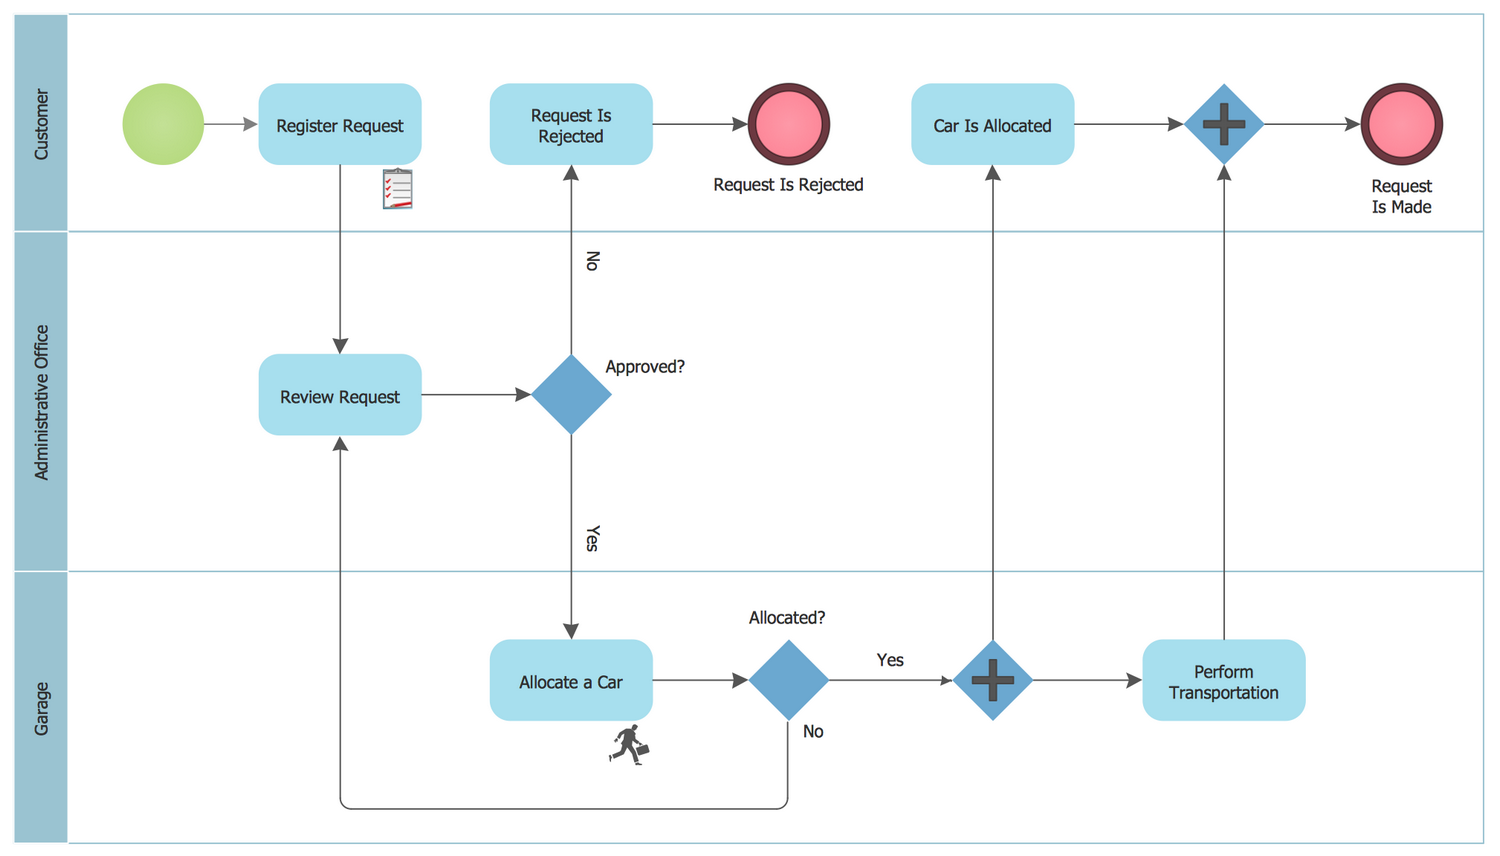 Bpmn 1 2 Diagram Taxi Order Process In 2020 Business Process Process Flow Diagram Diagram